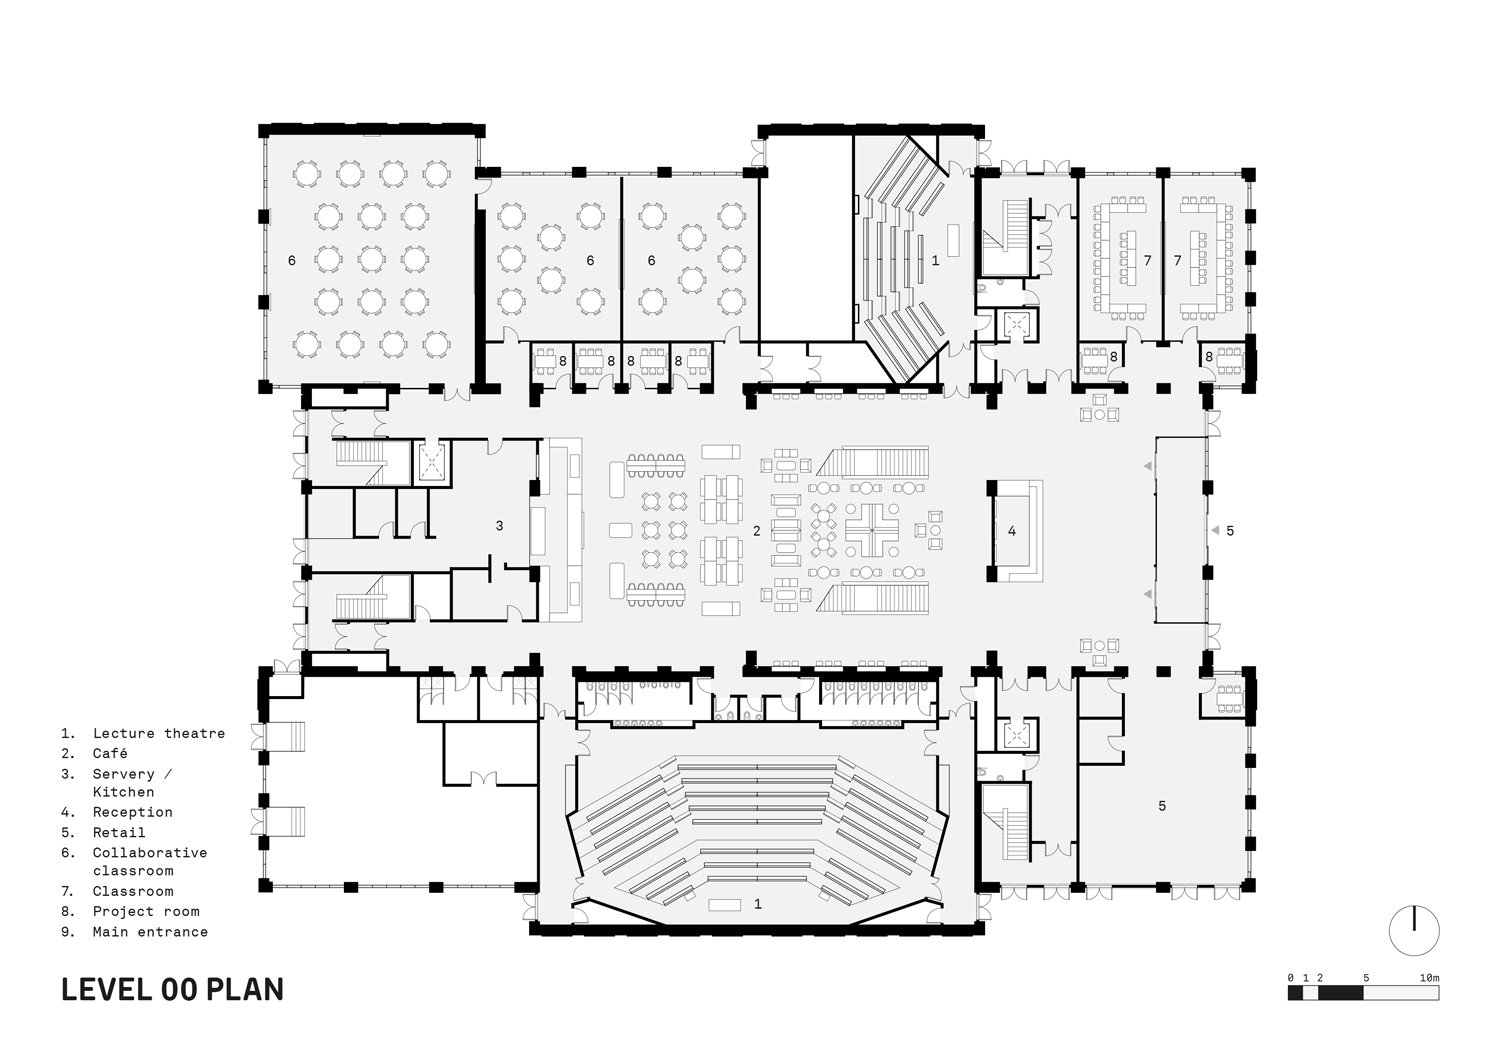 Level 00 Plan FaulknerBrowns Architects}